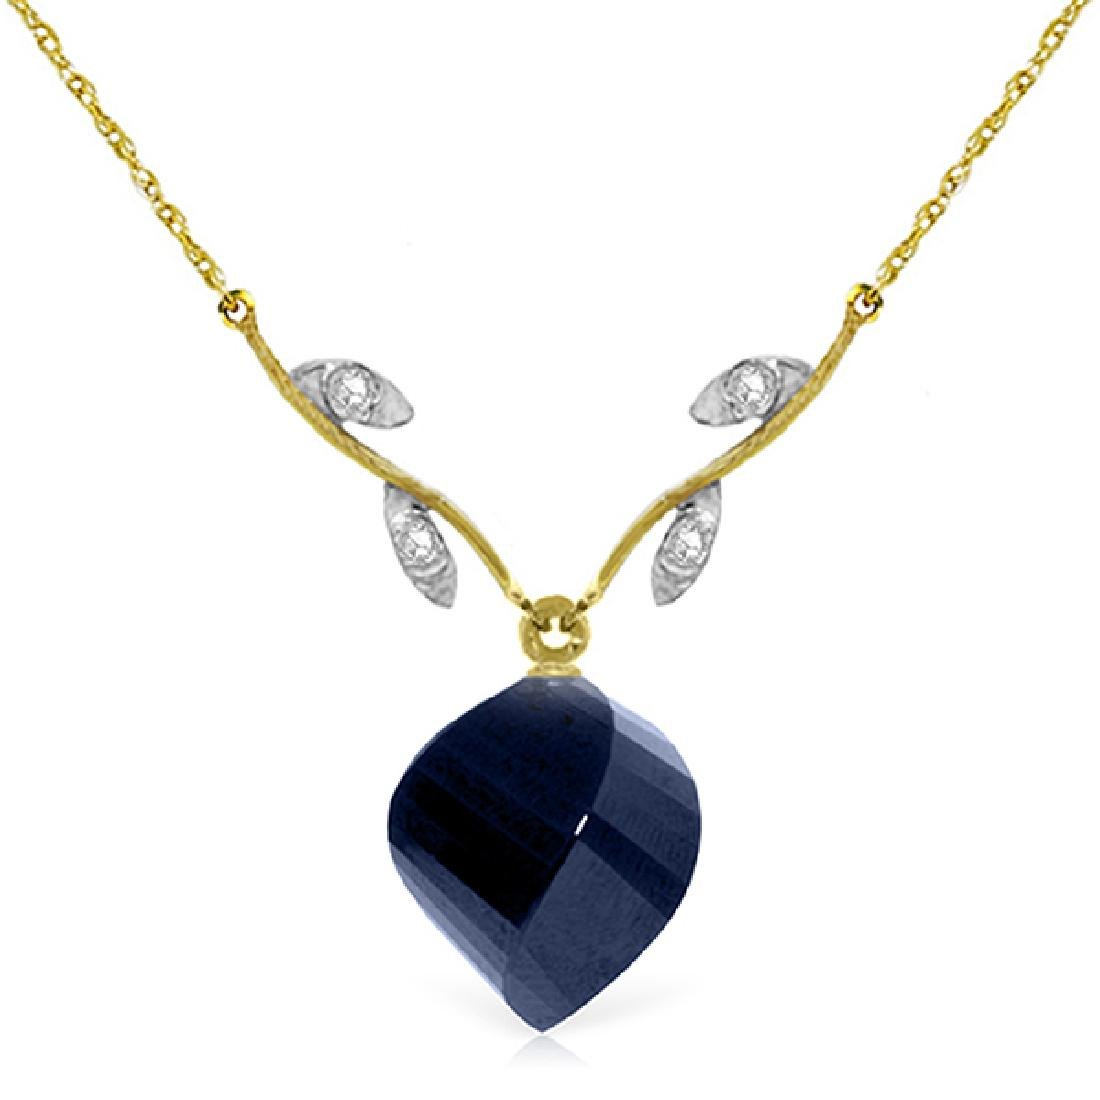 Genuine 15.27 ctw Sapphire & Diamond Necklace Jewelry